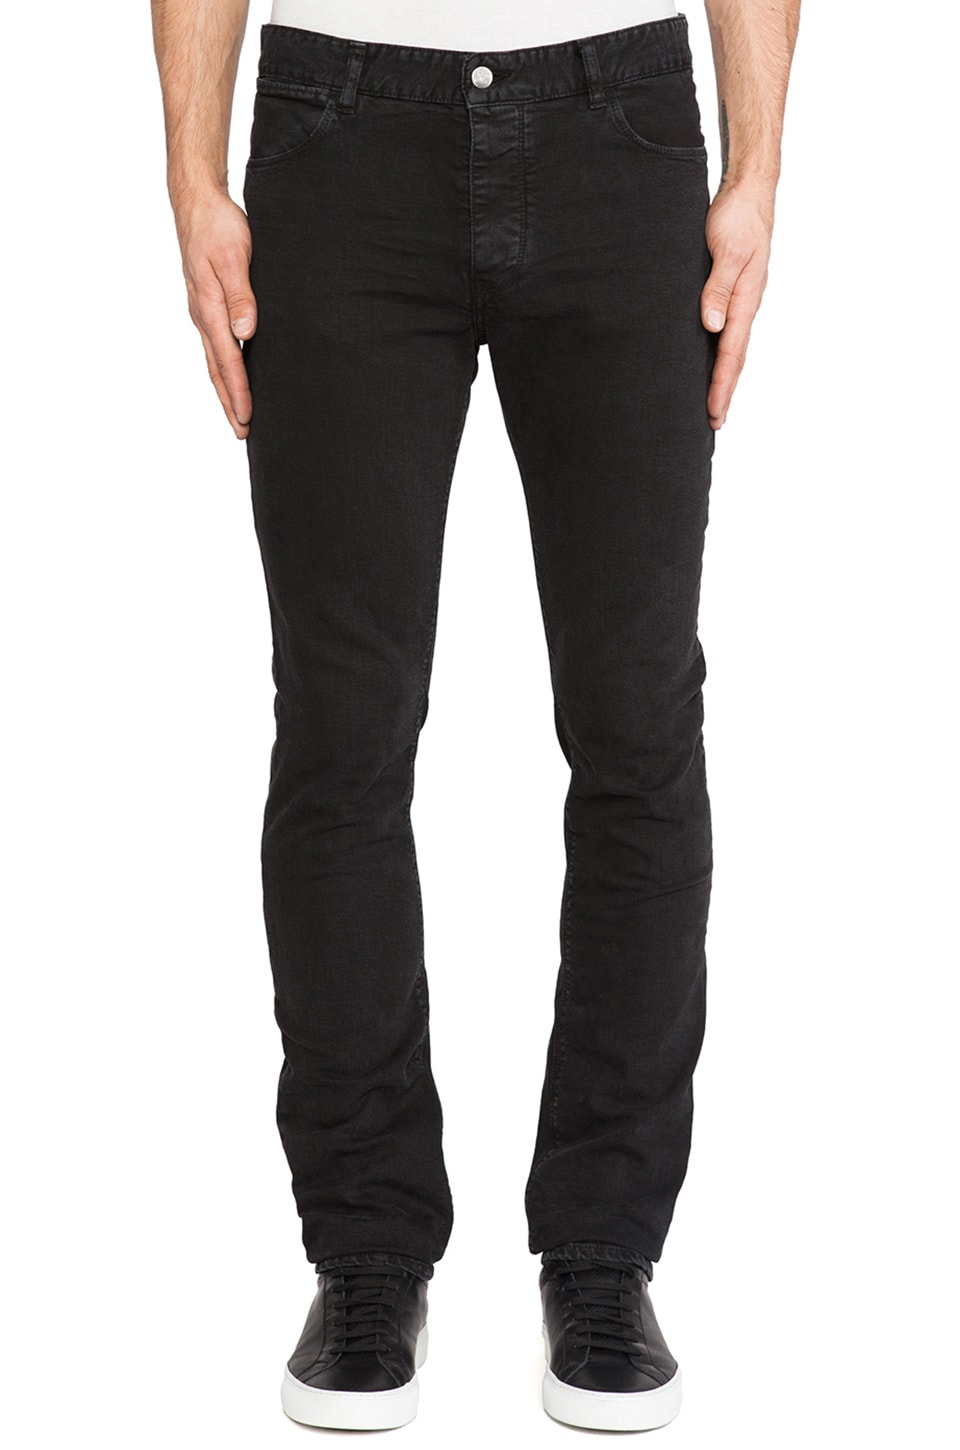 IRO Enzo Jean in Black